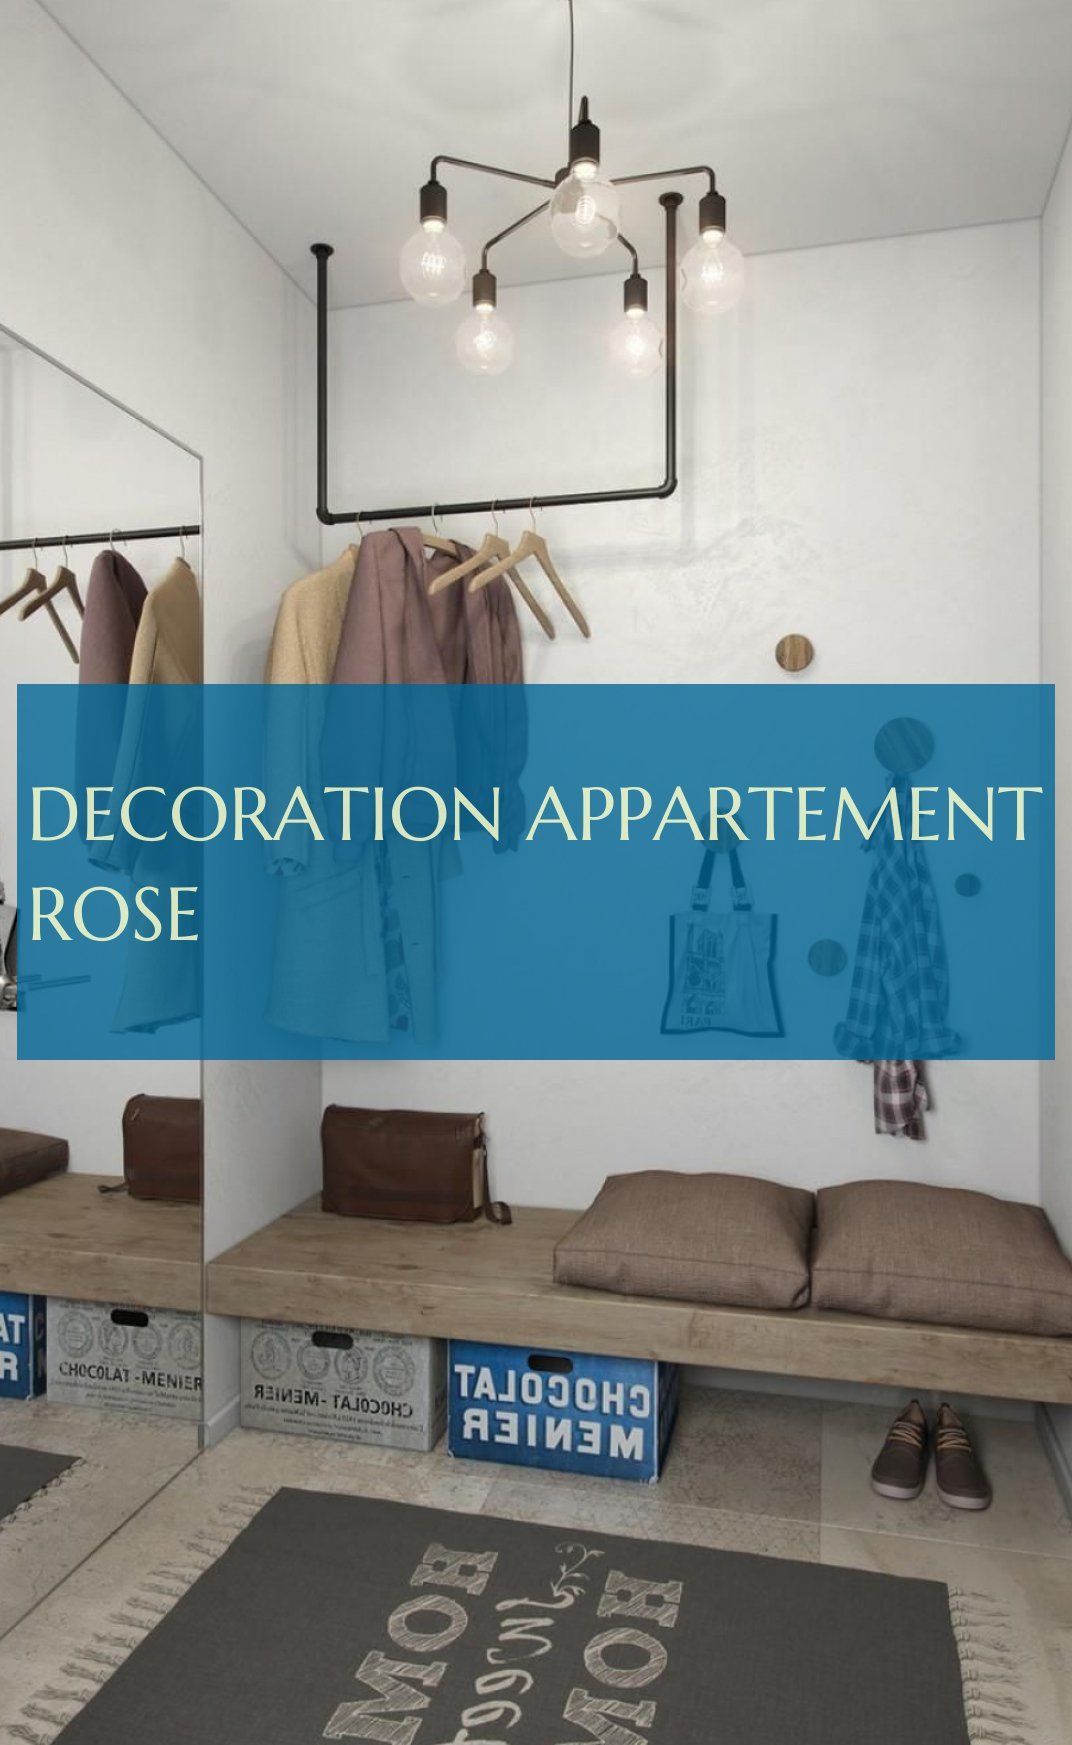 decoration appartement rose